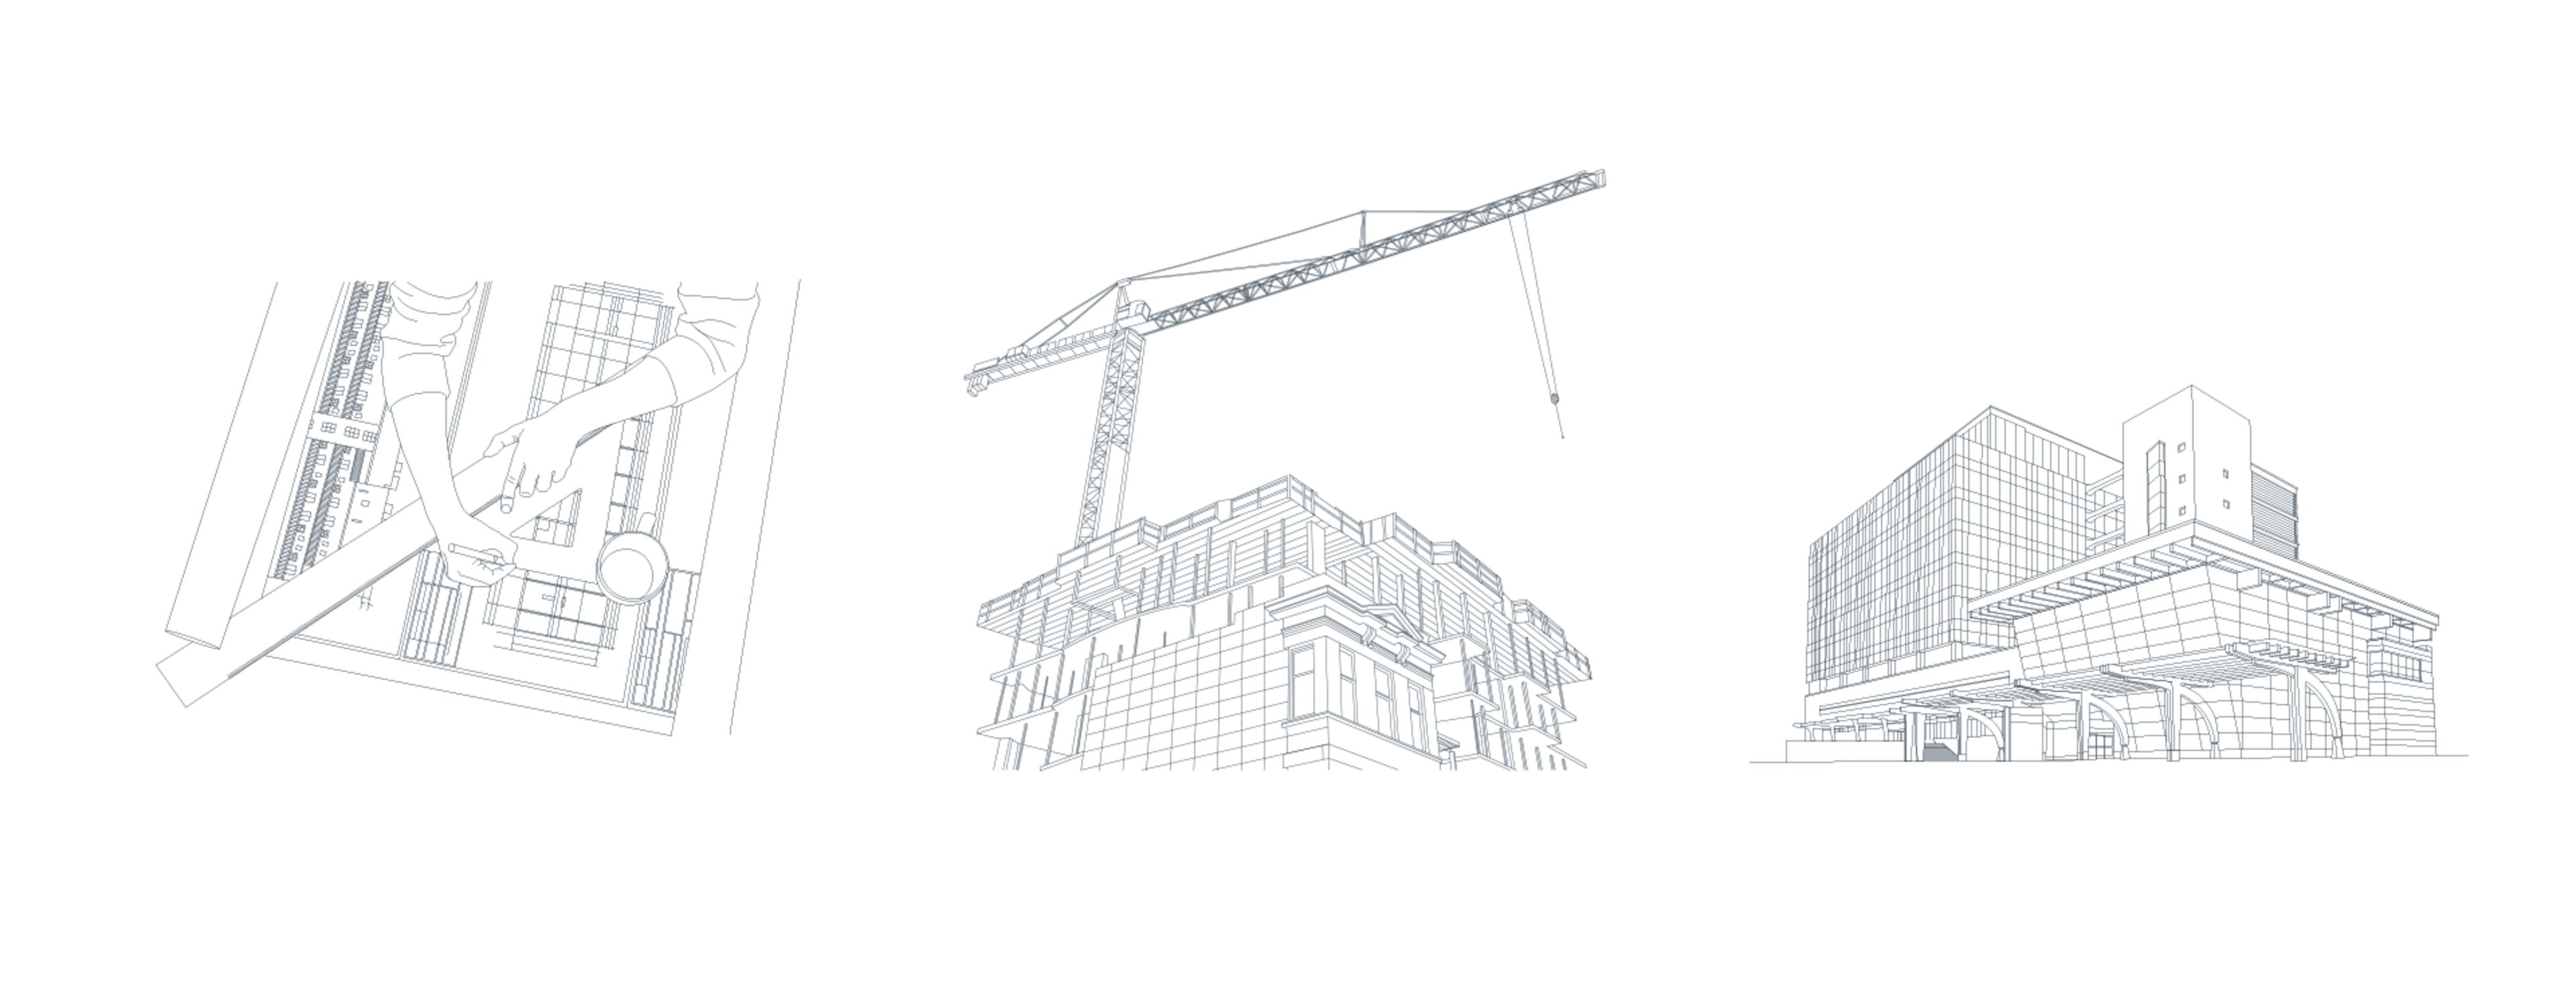 three illustrations. The first speaks to pre-construction and planning. Showing a person drawing a blueprint. The second speaks to construction. there is a building in progress with a crane. The third represents post-construction followed by an Illustration of a completed building.